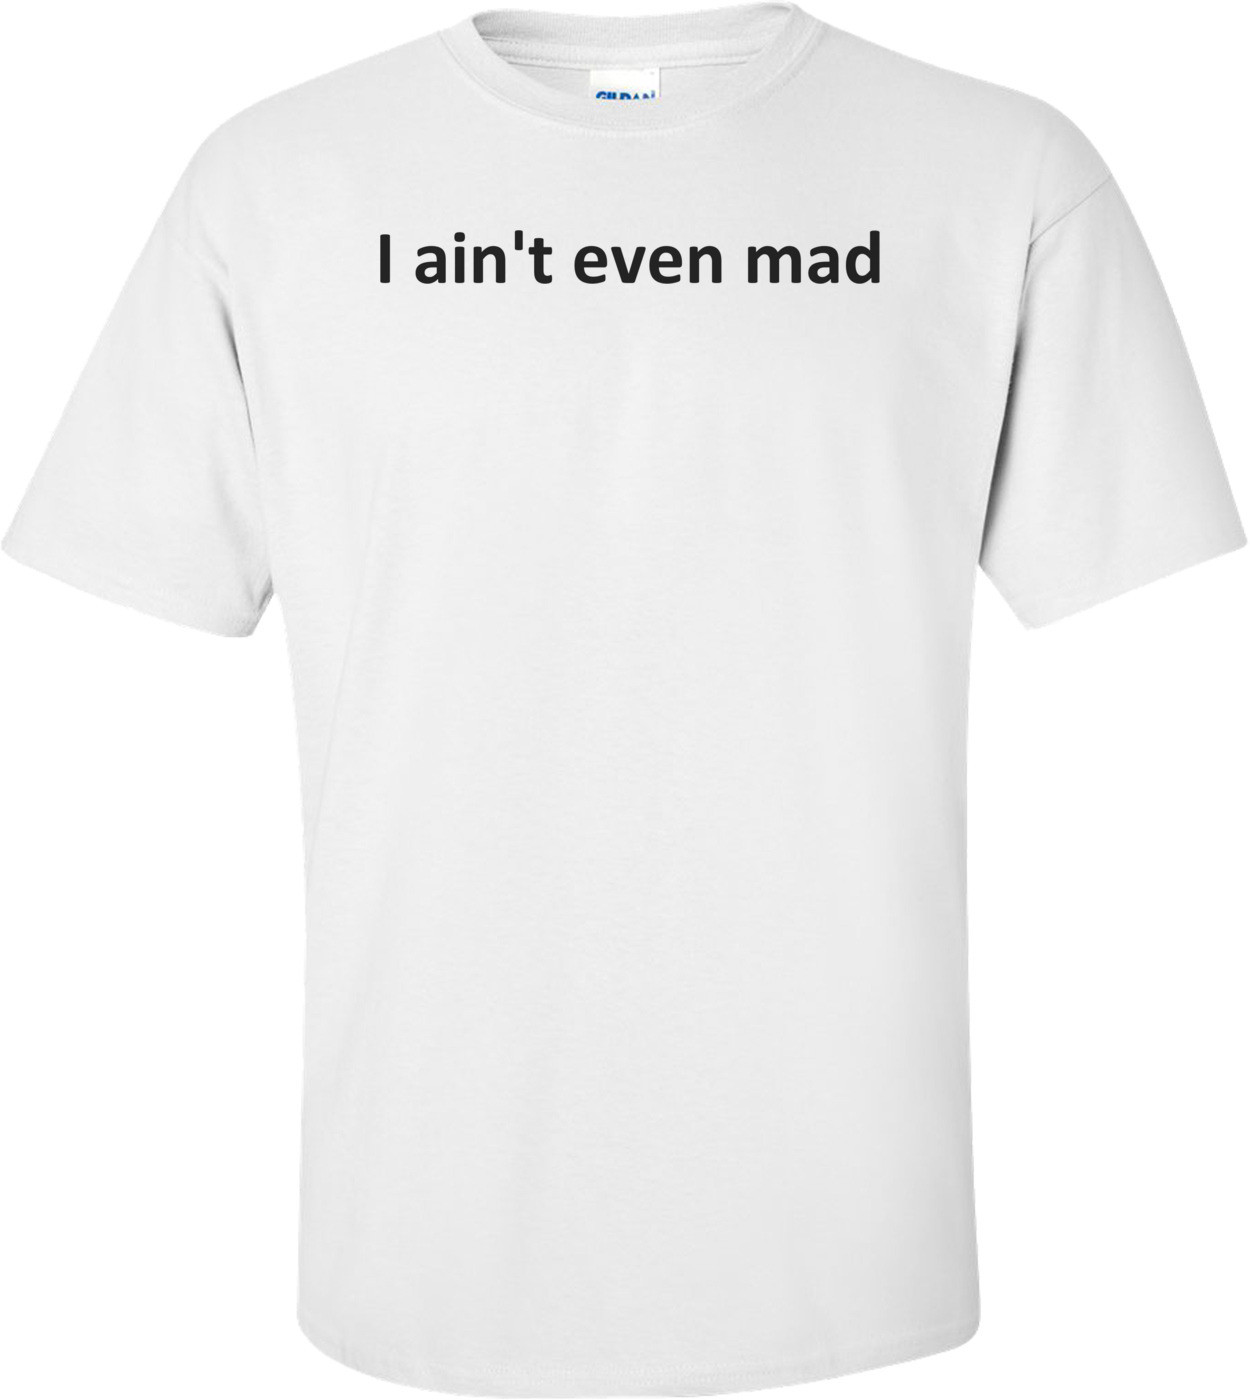 I ain't even mad Shirt